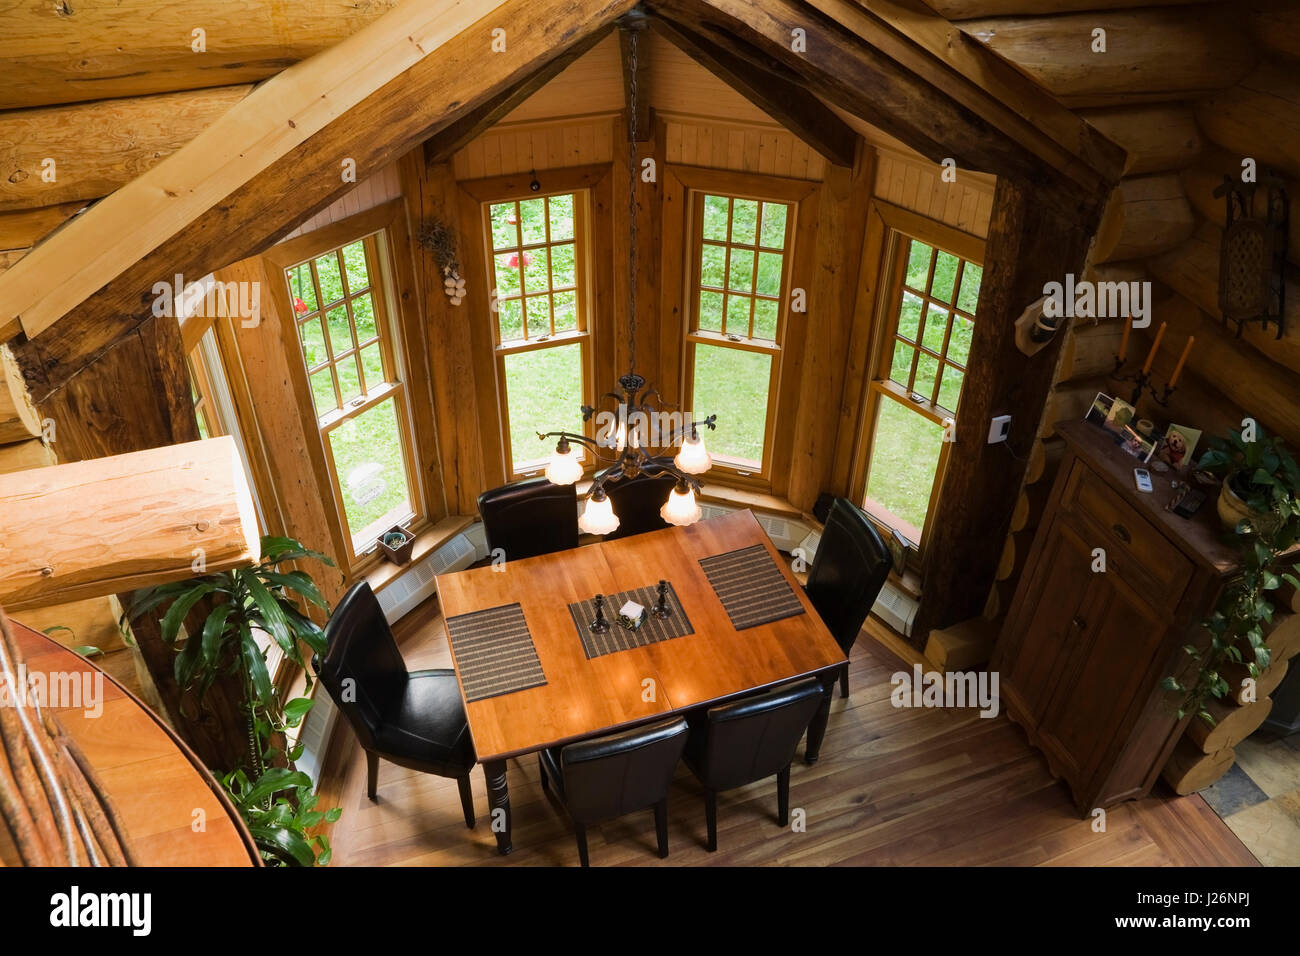 View From Mezzanine Of The Wooden Dining Table With Leather Chairs In Room Inside A 2003 Built Cottage Style Residential Log Home Quebec